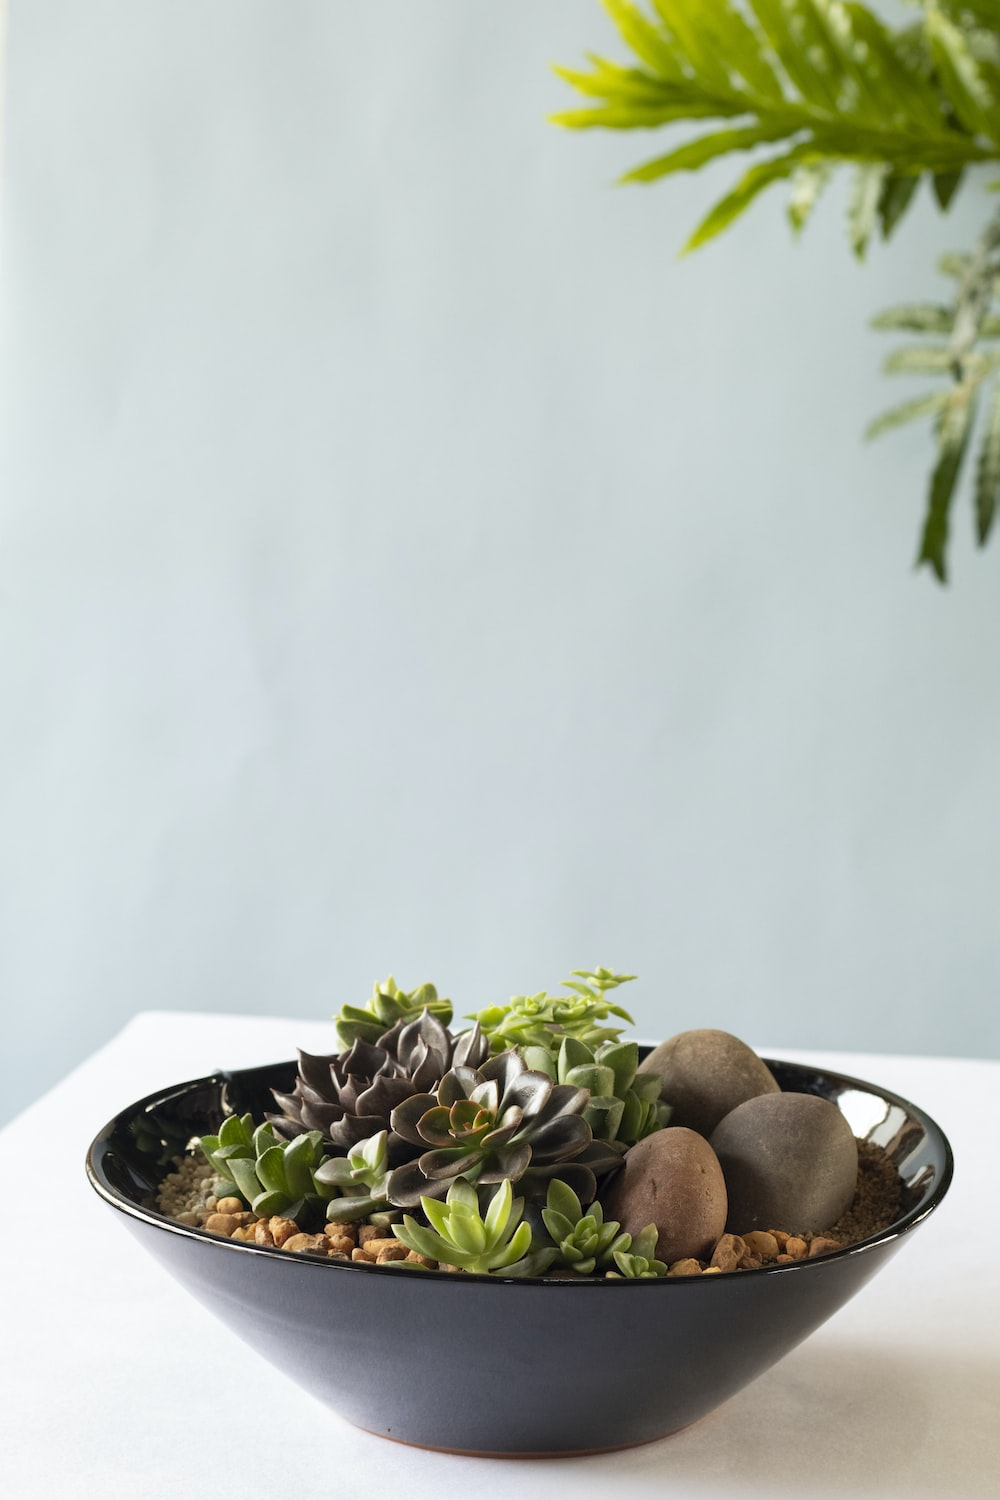 brown and black round fruits on white ceramic plate